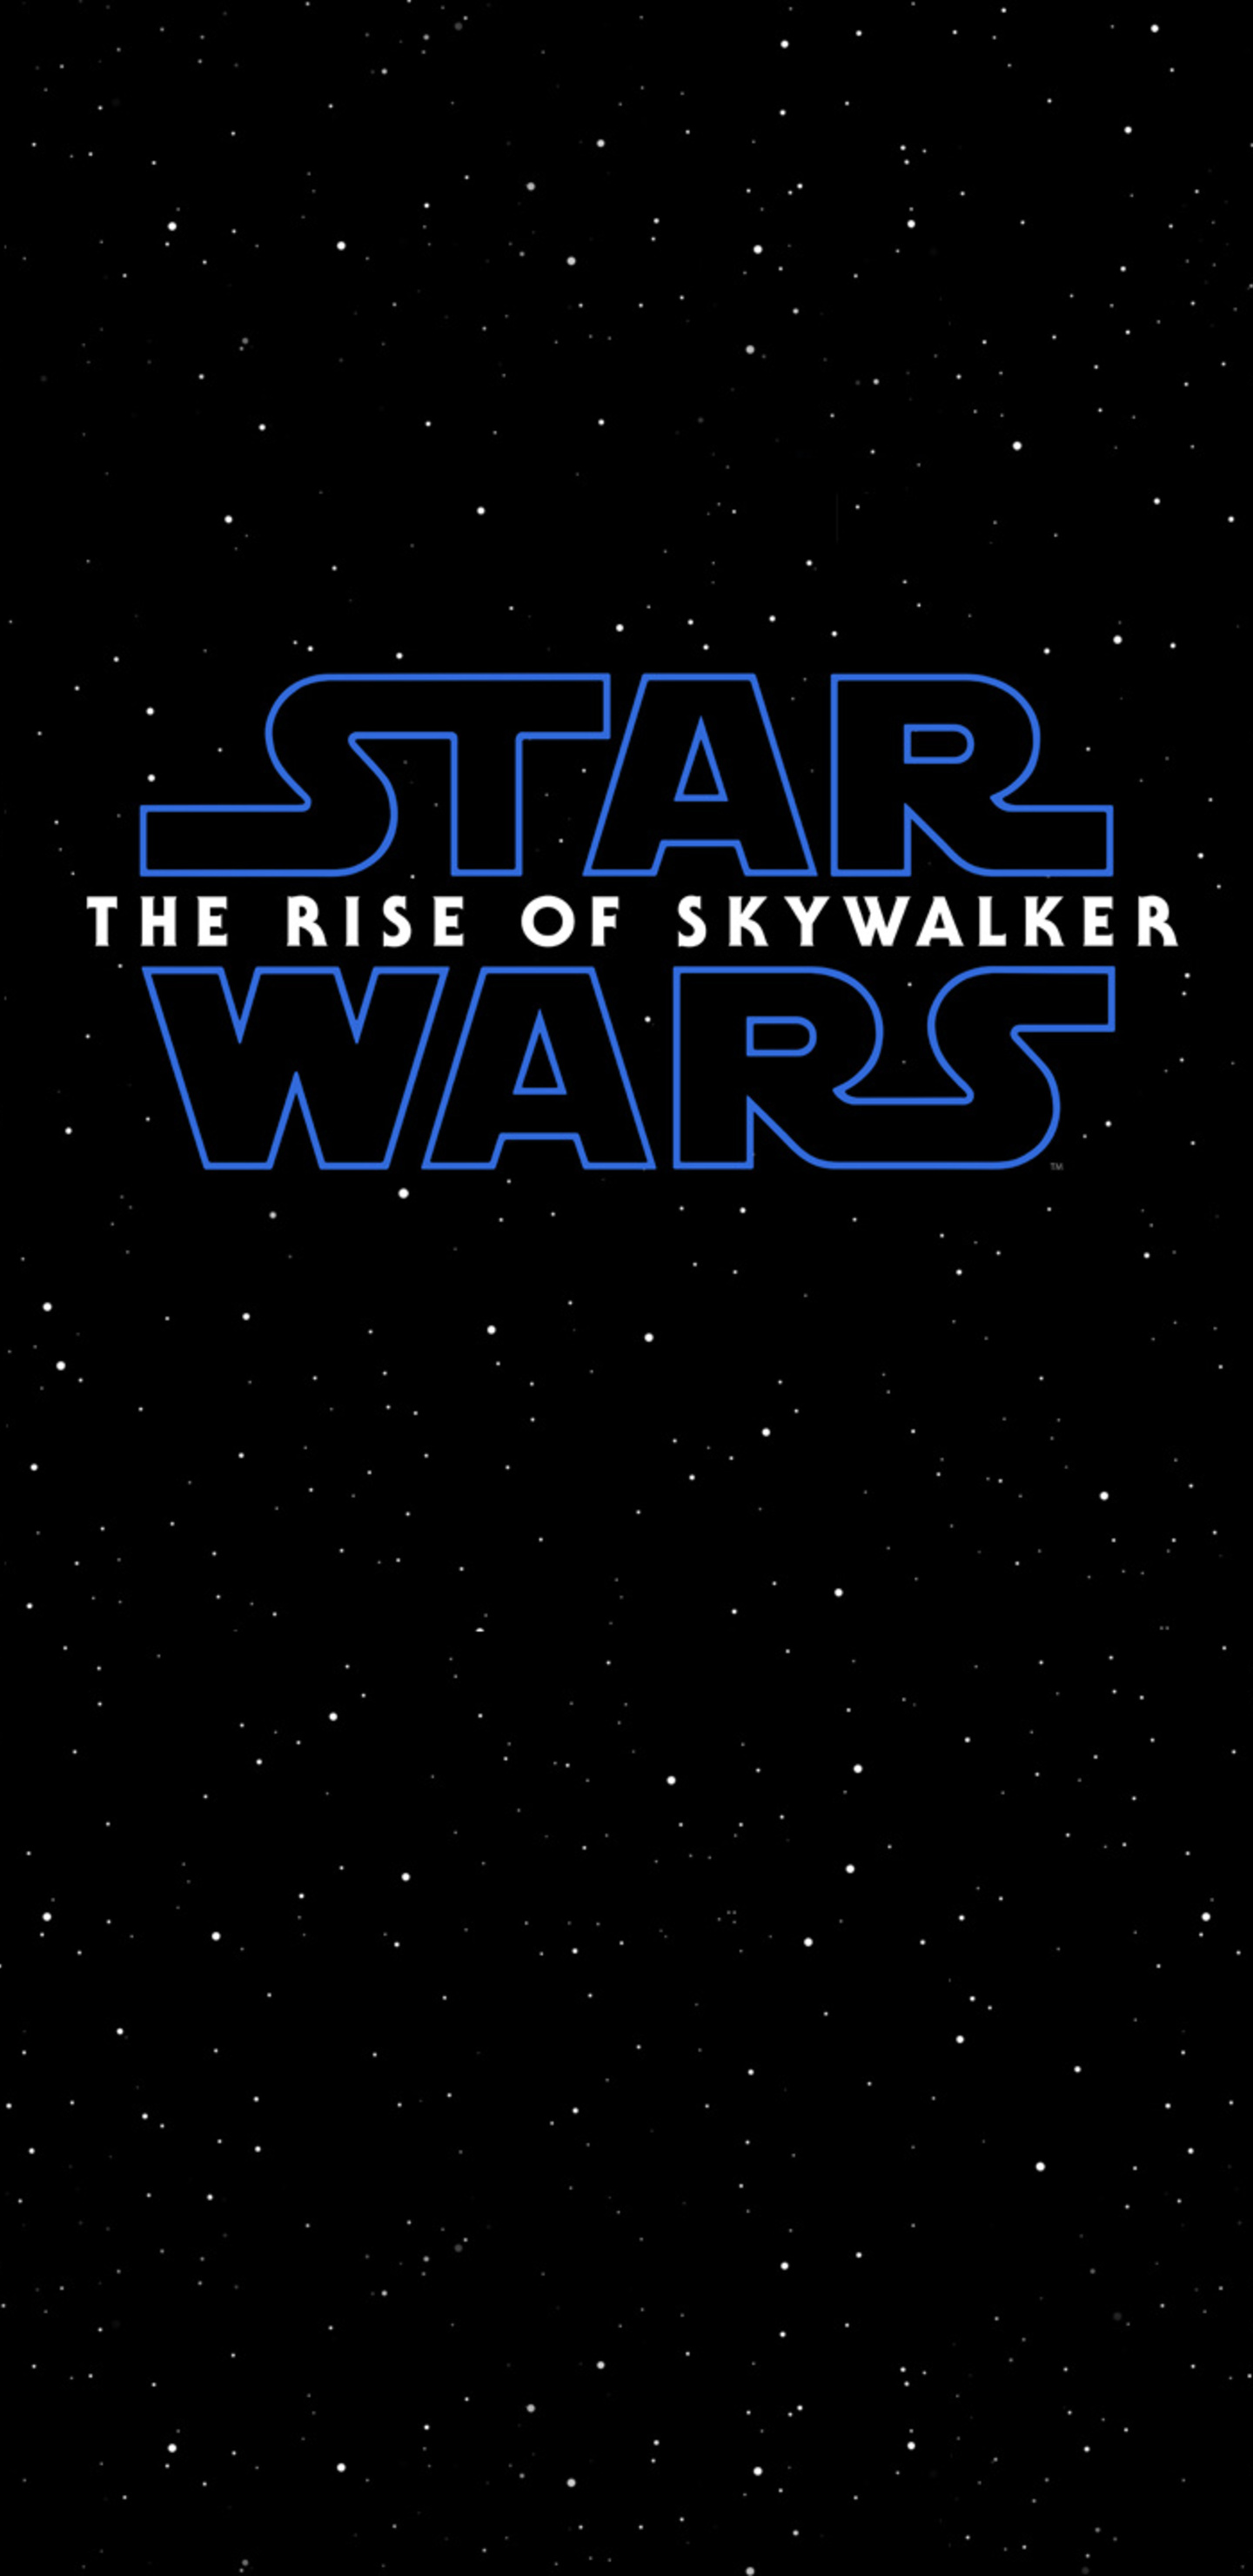 1440x2960 Star Wars The Rise Of Skywalker 2019 Samsung Galaxy Note 9 8 S9 S8 S8 Qhd Hd 4k Wallpapers Images Backgrounds Photos And Pictures